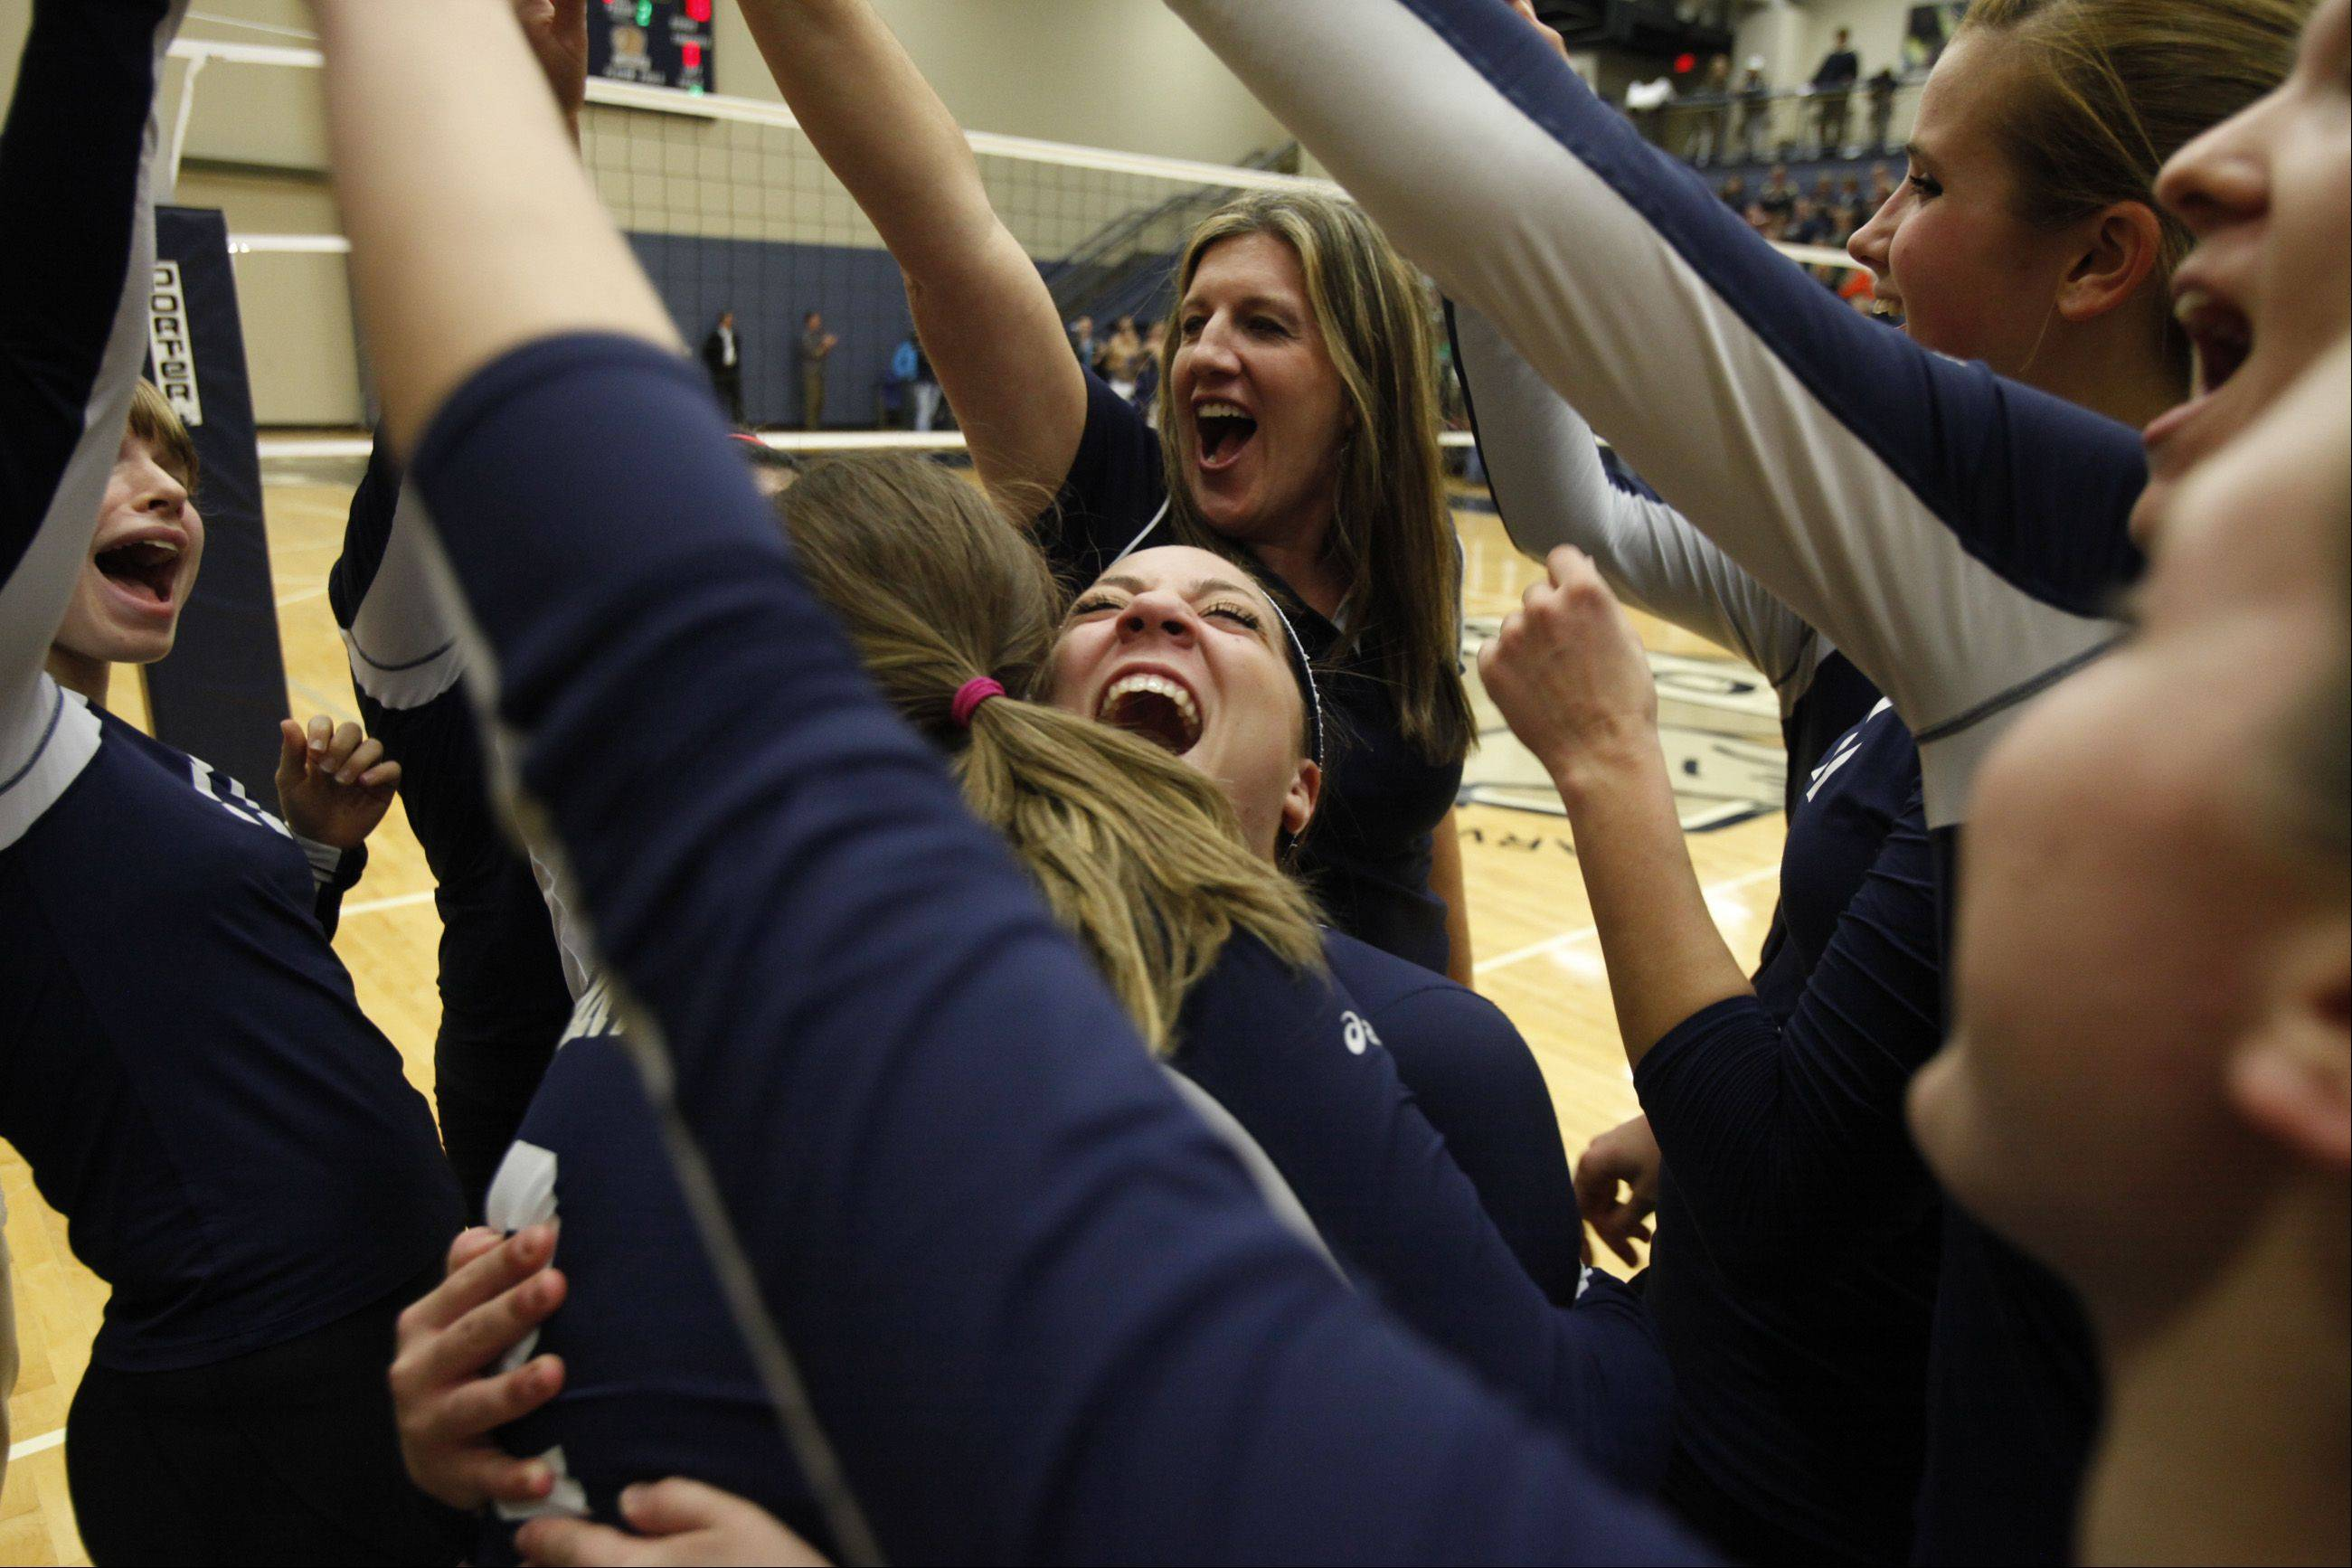 Harvest Christian players celebrate around teammate Shayna Manusos after winning the sectional title Thursday night in Elgin.